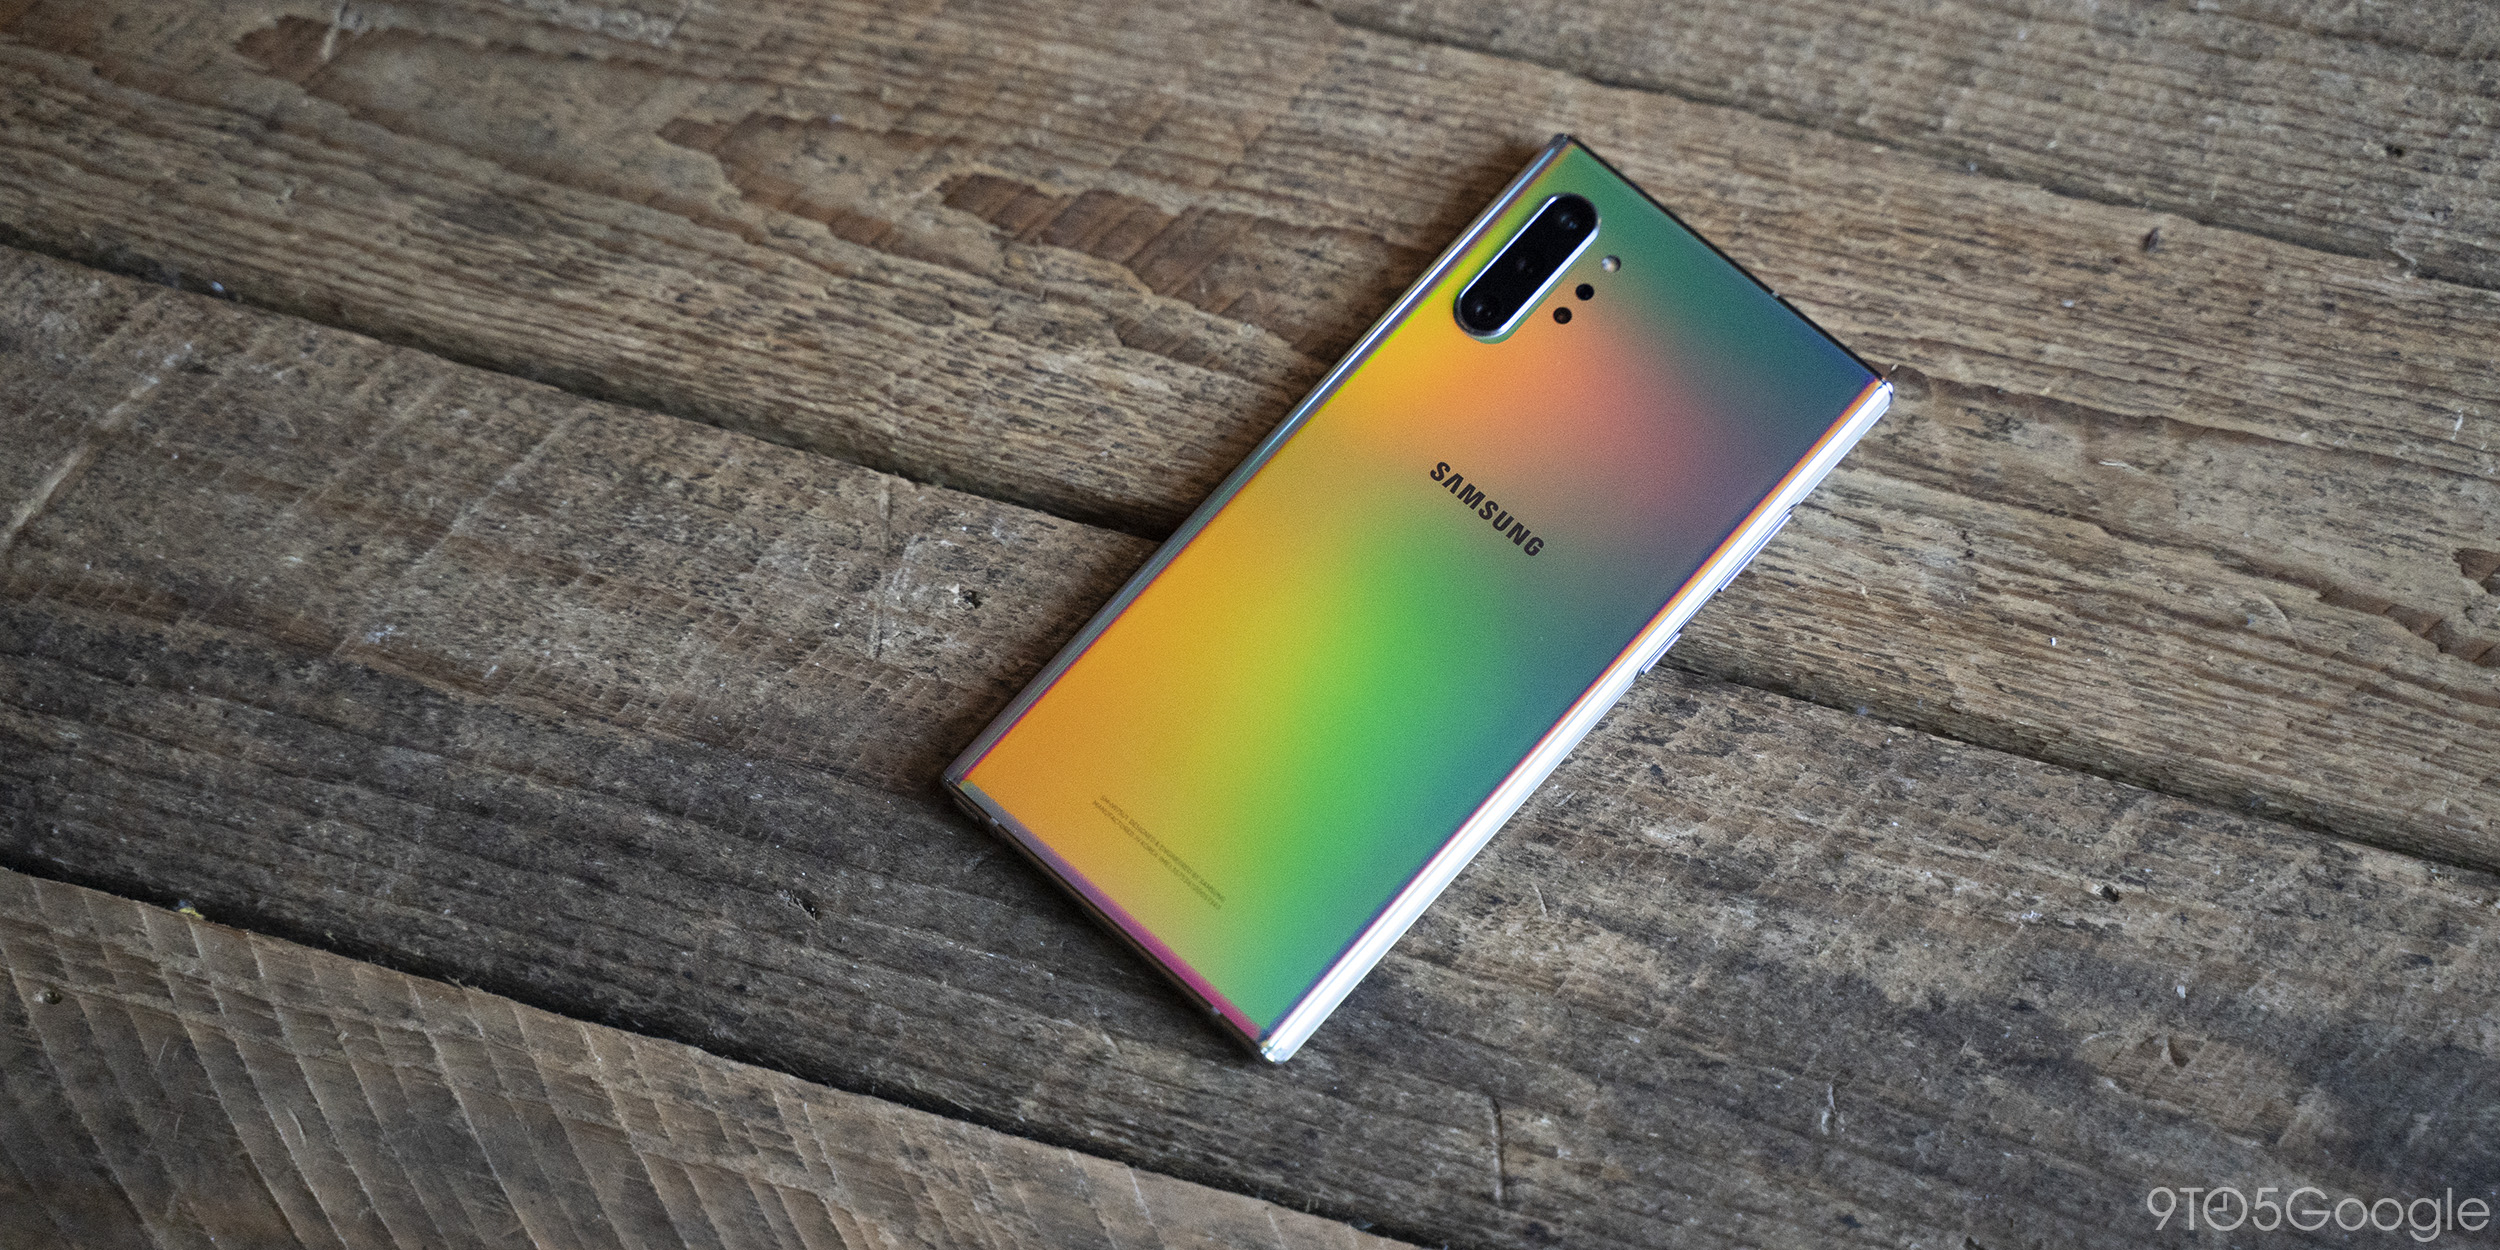 [Update: Galaxy S10] Samsung Galaxy Note 10 and Note 9 now receiving December 2019 security patch